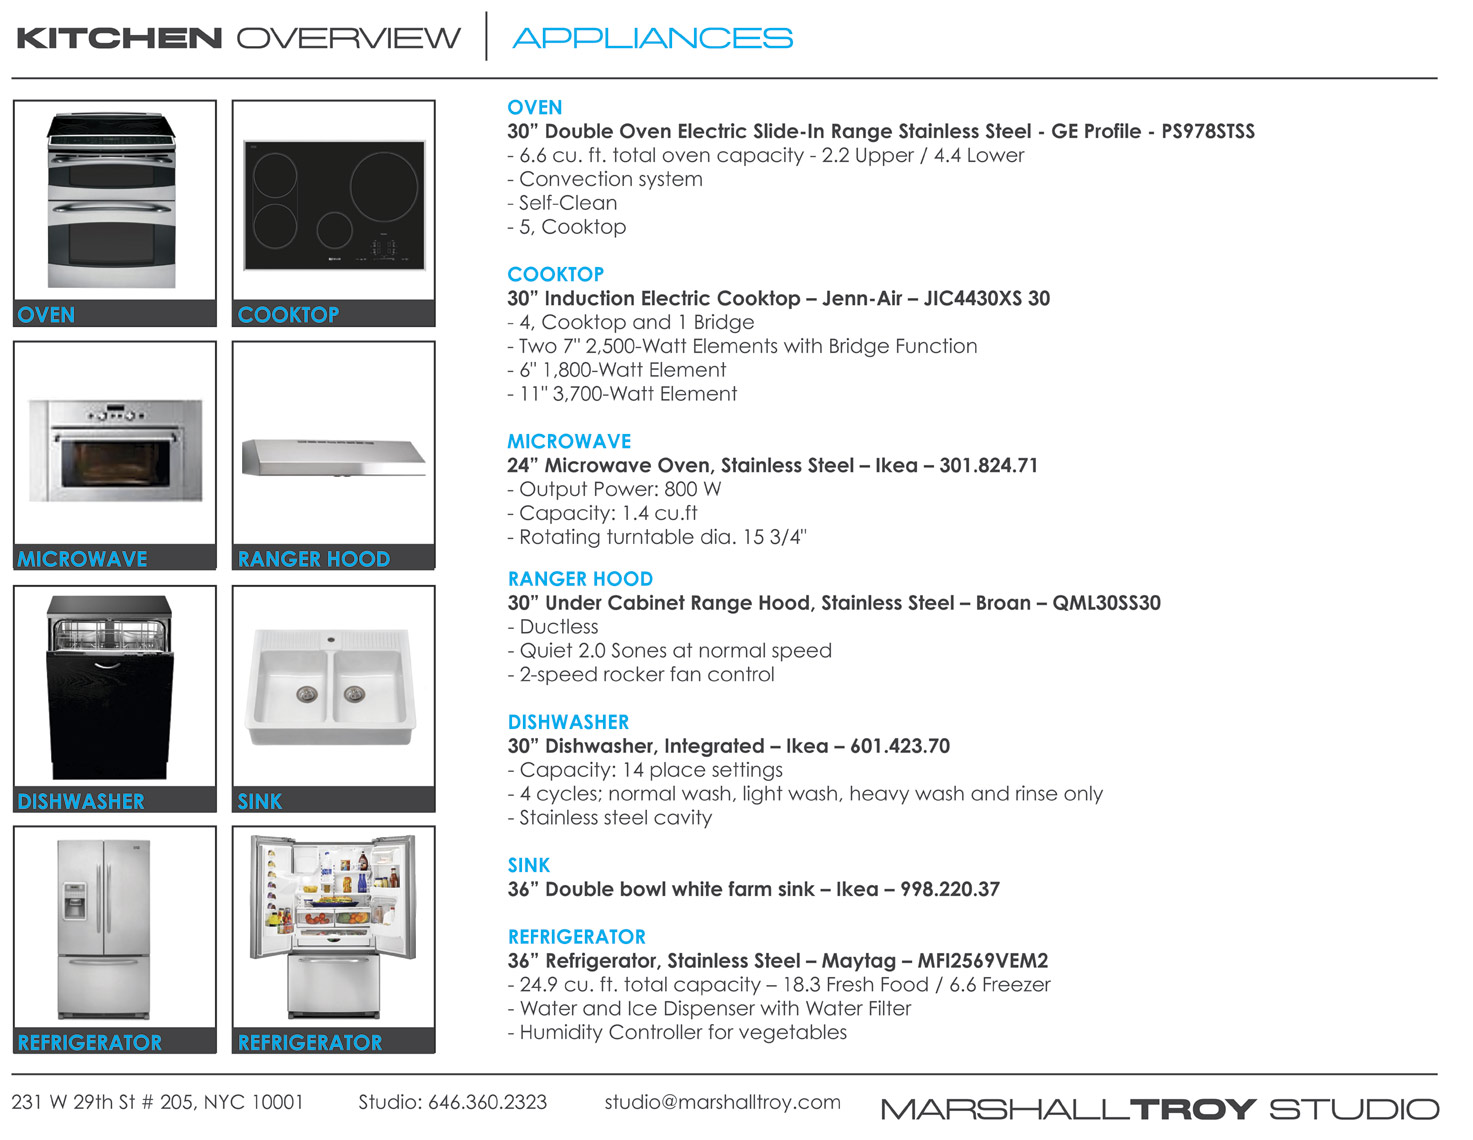 Appliance List_2